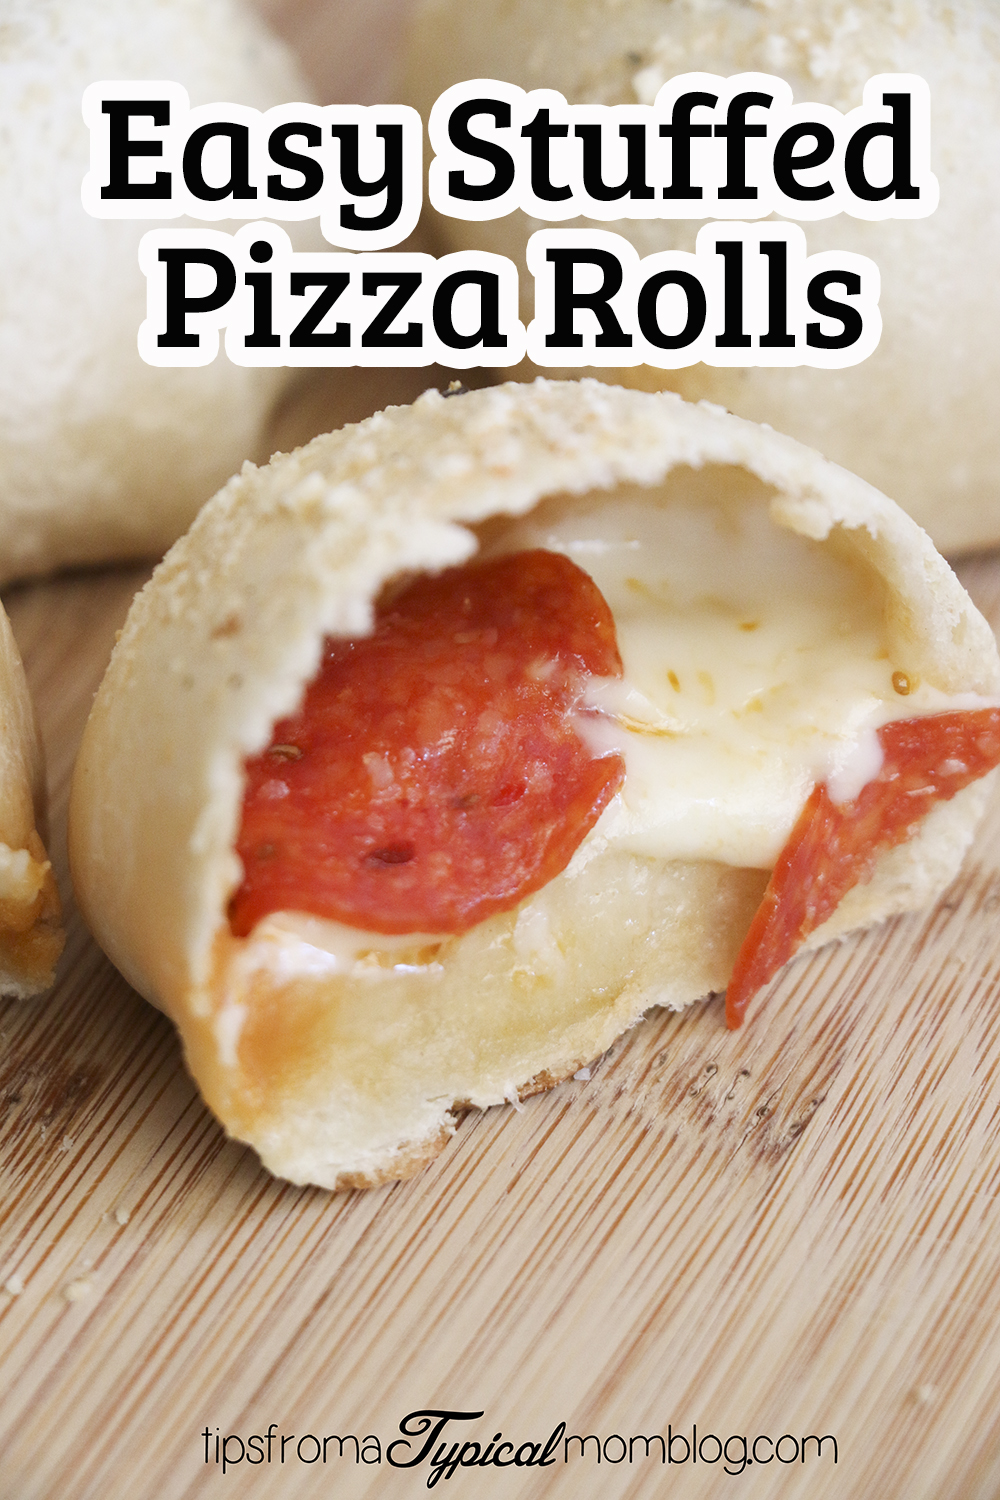 Easy Stuffed Pizza Rolls Made With Rhodes Roll Dough Tips From A